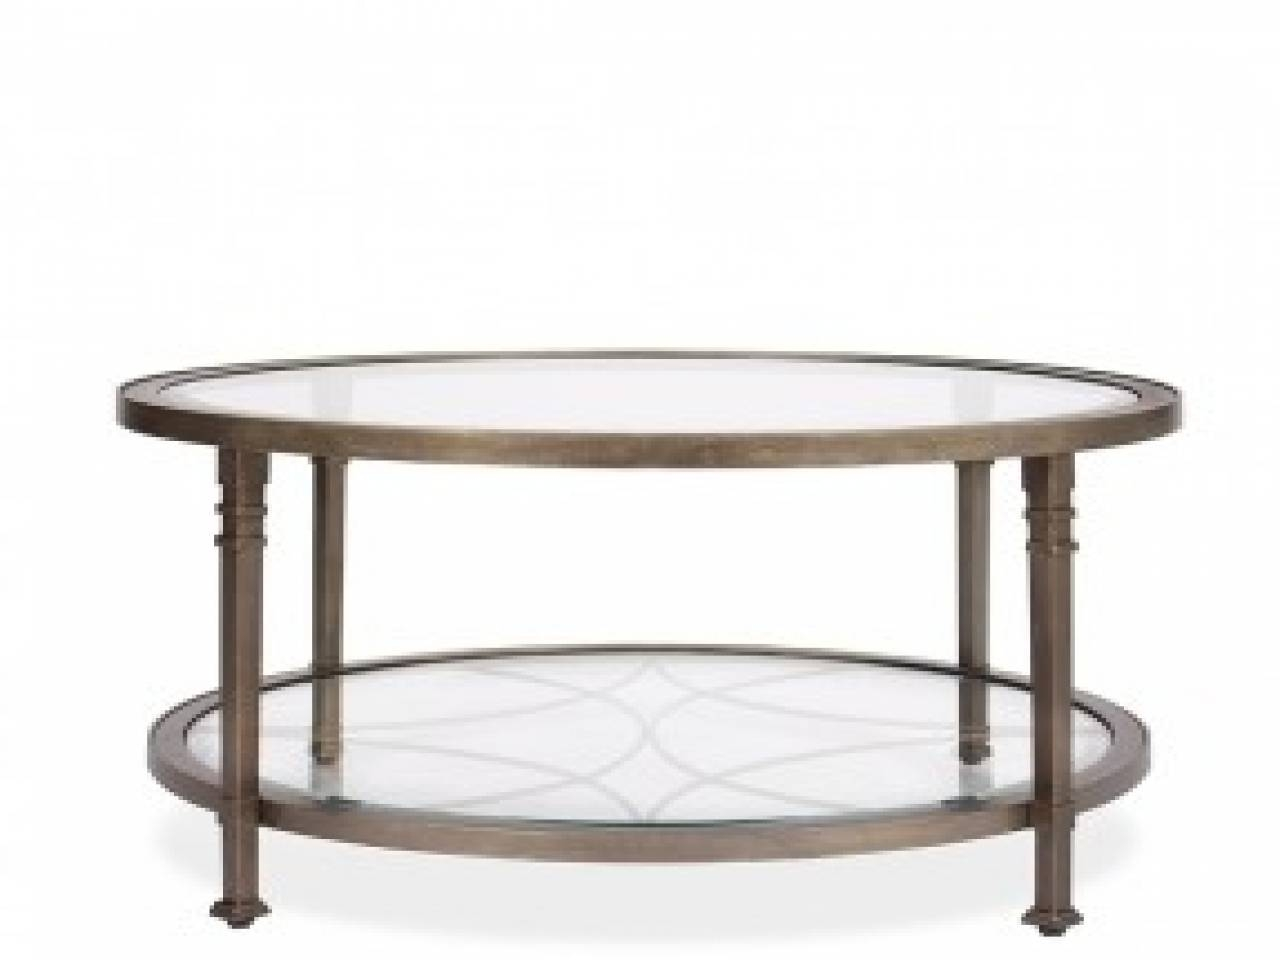 Round Industrial Coffee Table Metal Glass Coffee Tables Round in Round Glass Coffee Tables (Image 23 of 30)